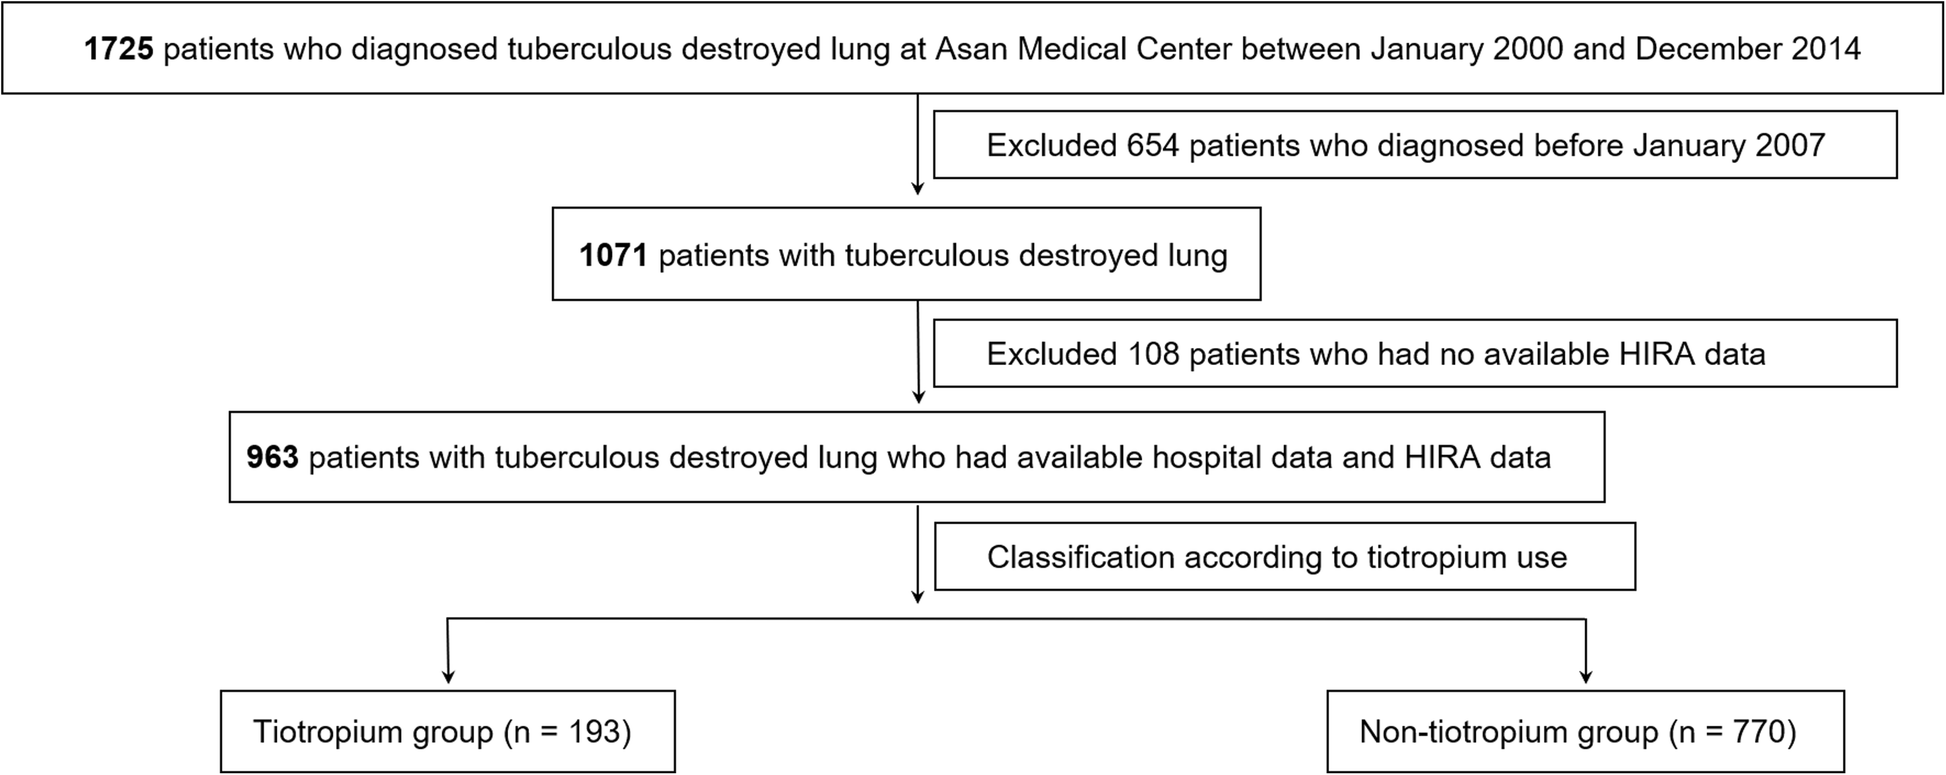 Asan Statement On Media Claims Linking >> Effect Of Tiotropium Inhaler Use On Mortality In Patients With